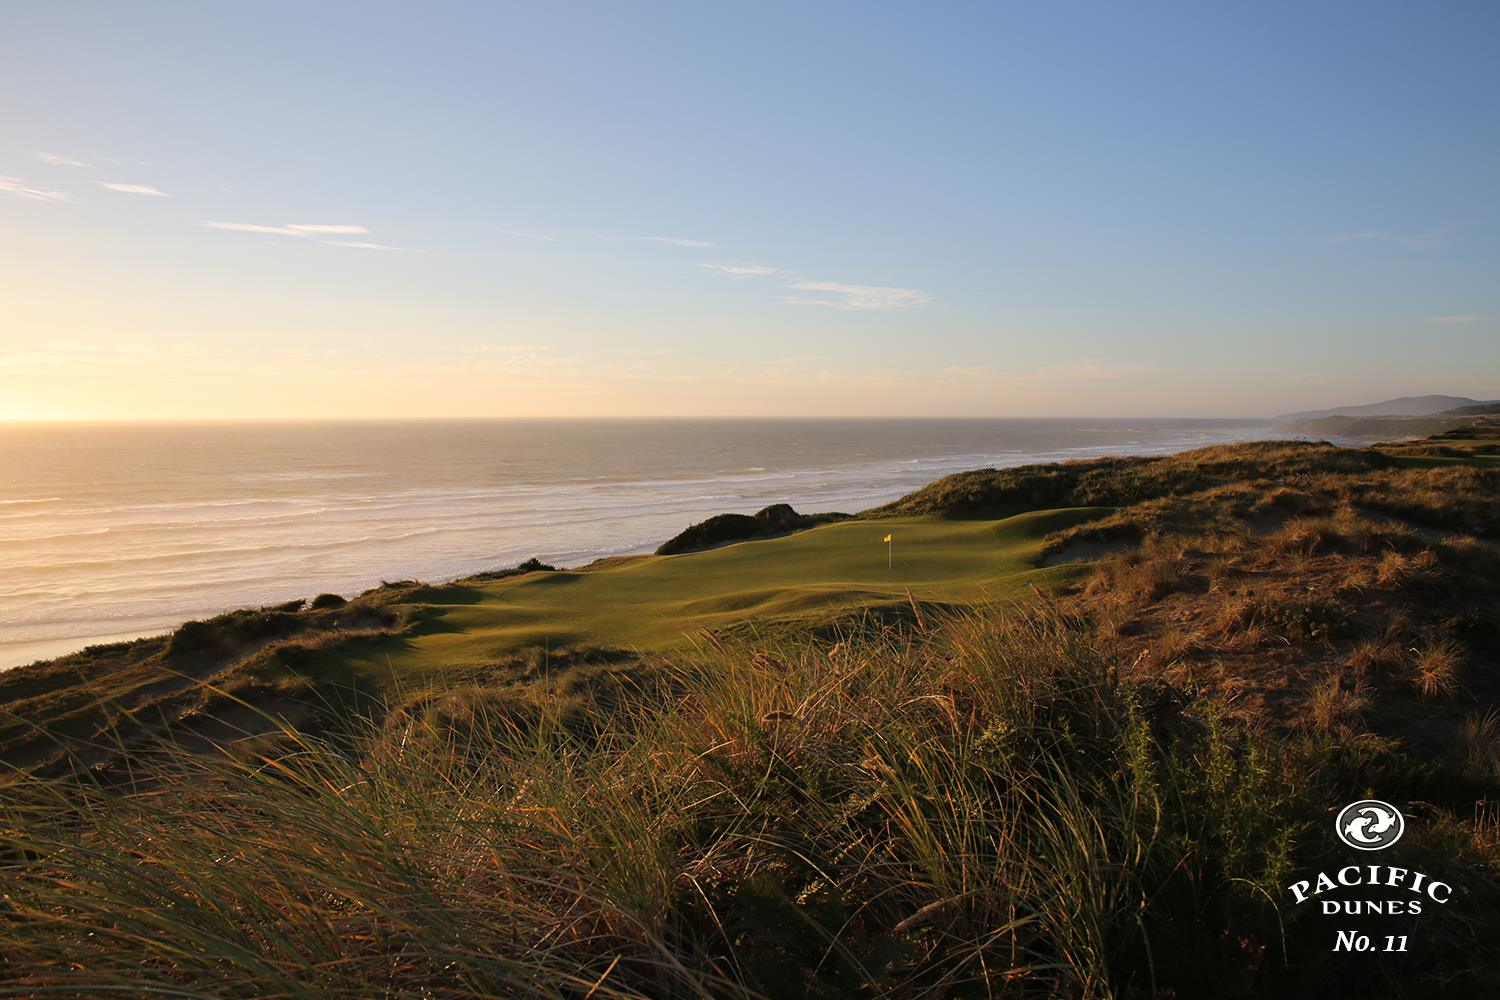 BANDON DUNES— - Best Resort in North America- Golf Digest, 2017America's 100 Greatest CoursesPacific Dunes - #2Bandon Dunes - #7Old Macdonald - #12Bandon Trails - #15- Golf Digest, 2019Top 100 in the WorldPacific Dunes - #26Bandon Dunes - #65- Golf Magazine, 2017-18